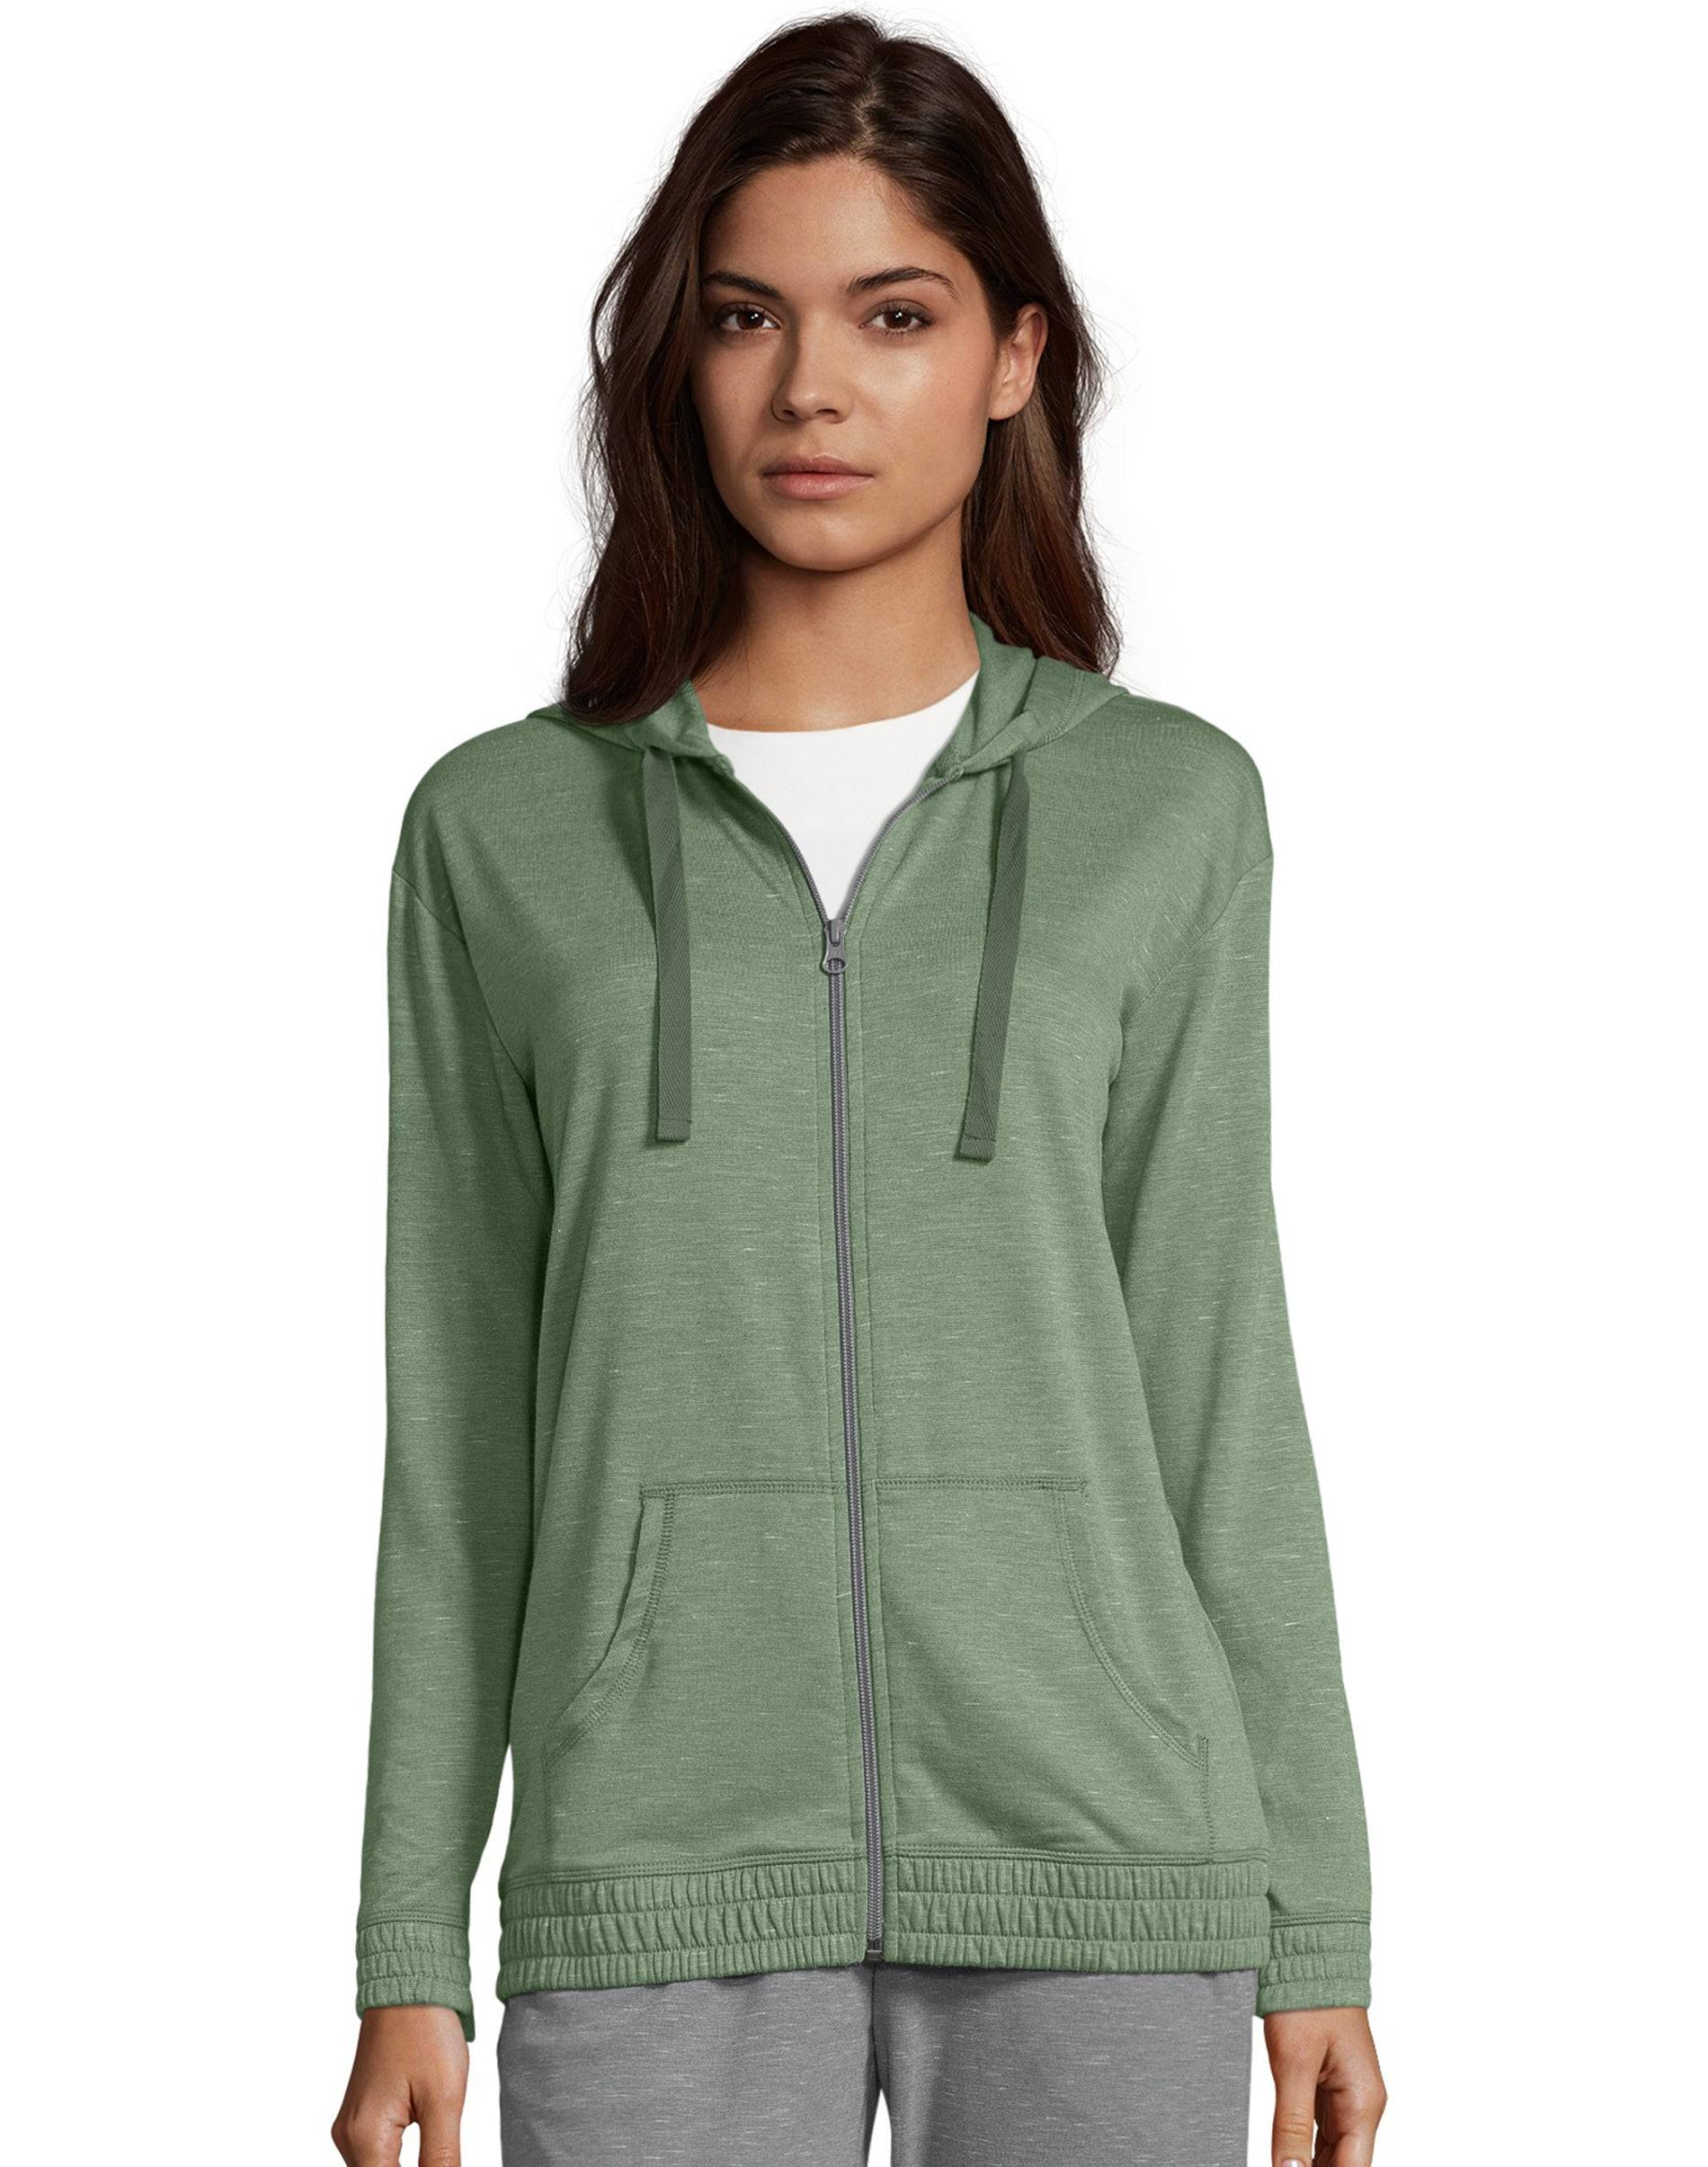 Hanes Women's French Terry Full Zip Hoodie Nature Green Heather XL